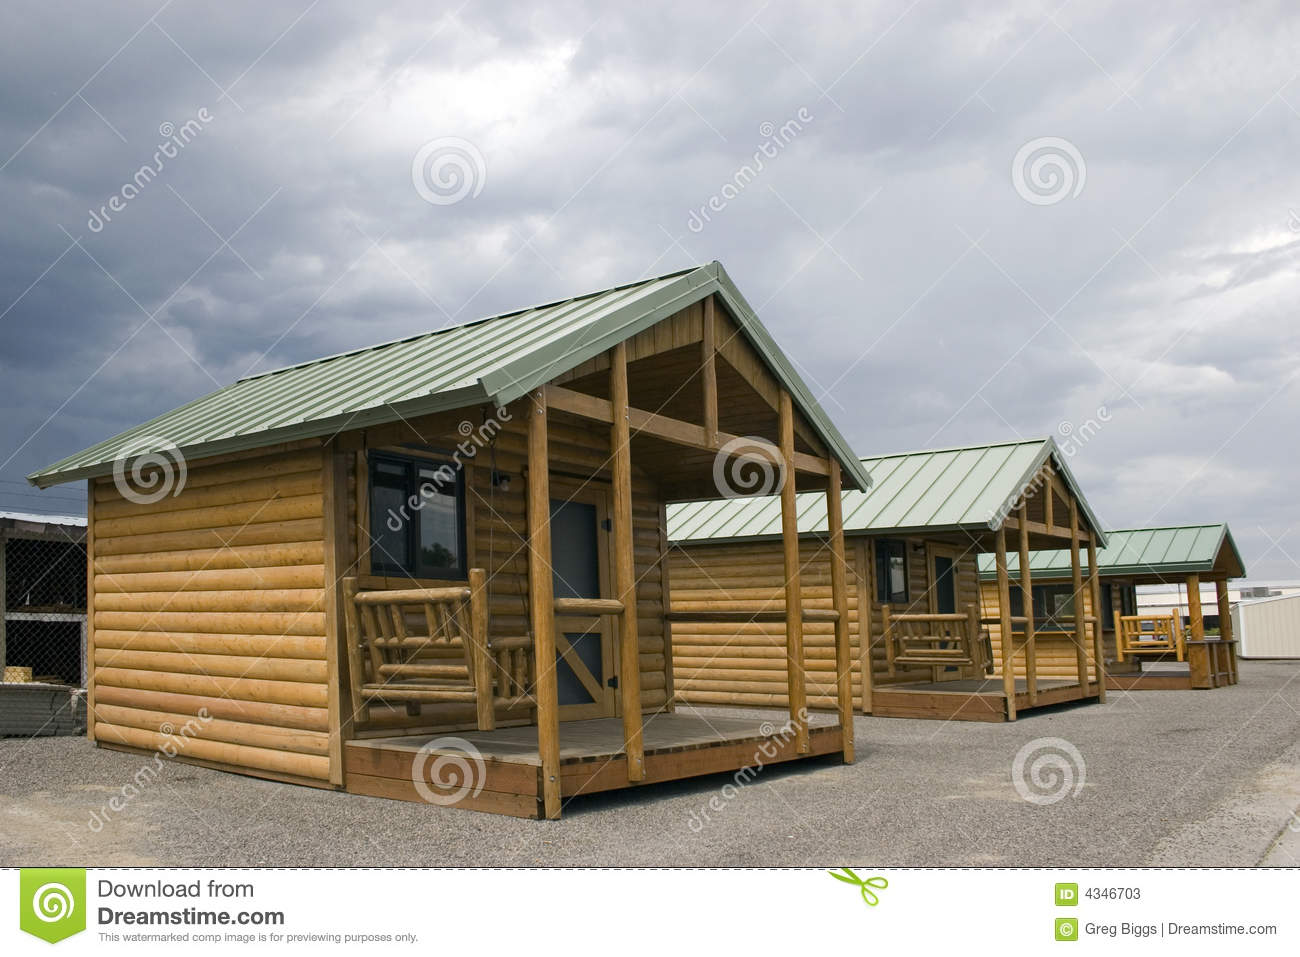 Wooden Cabins Stock Photos Image 4346703